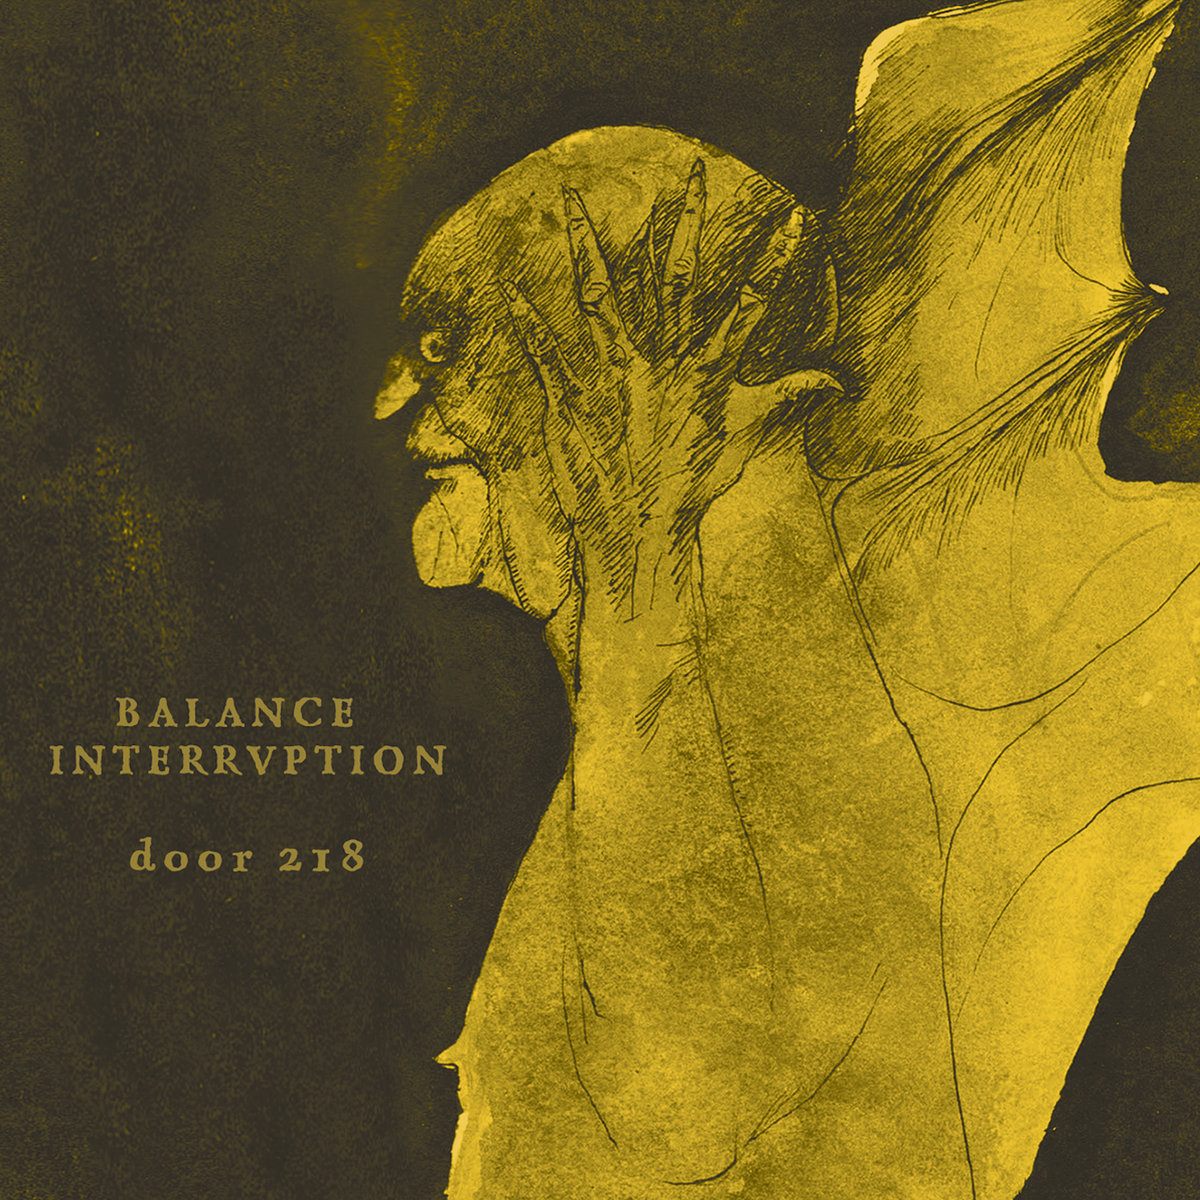 balance-interruption